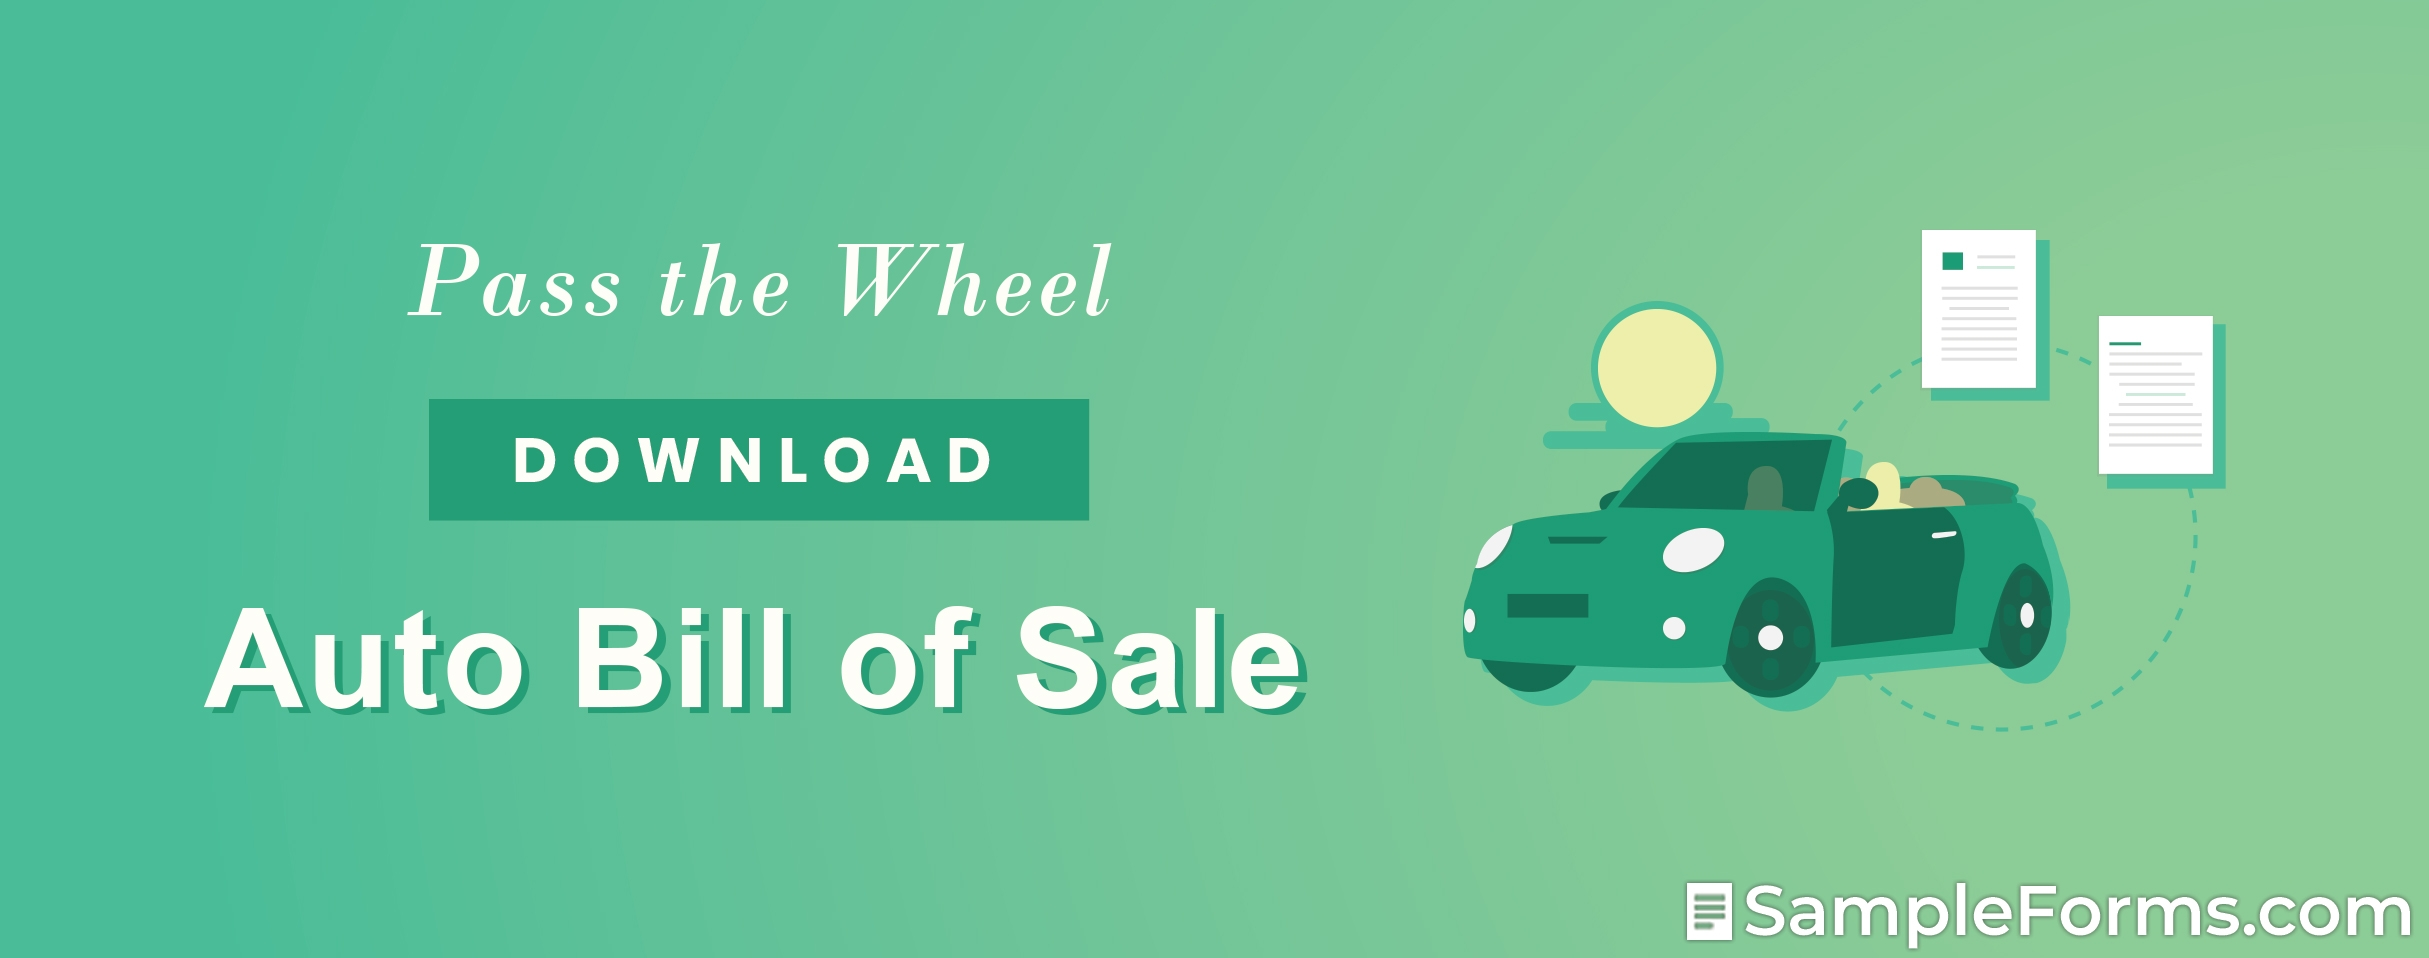 Auto Bill of Sale Form1